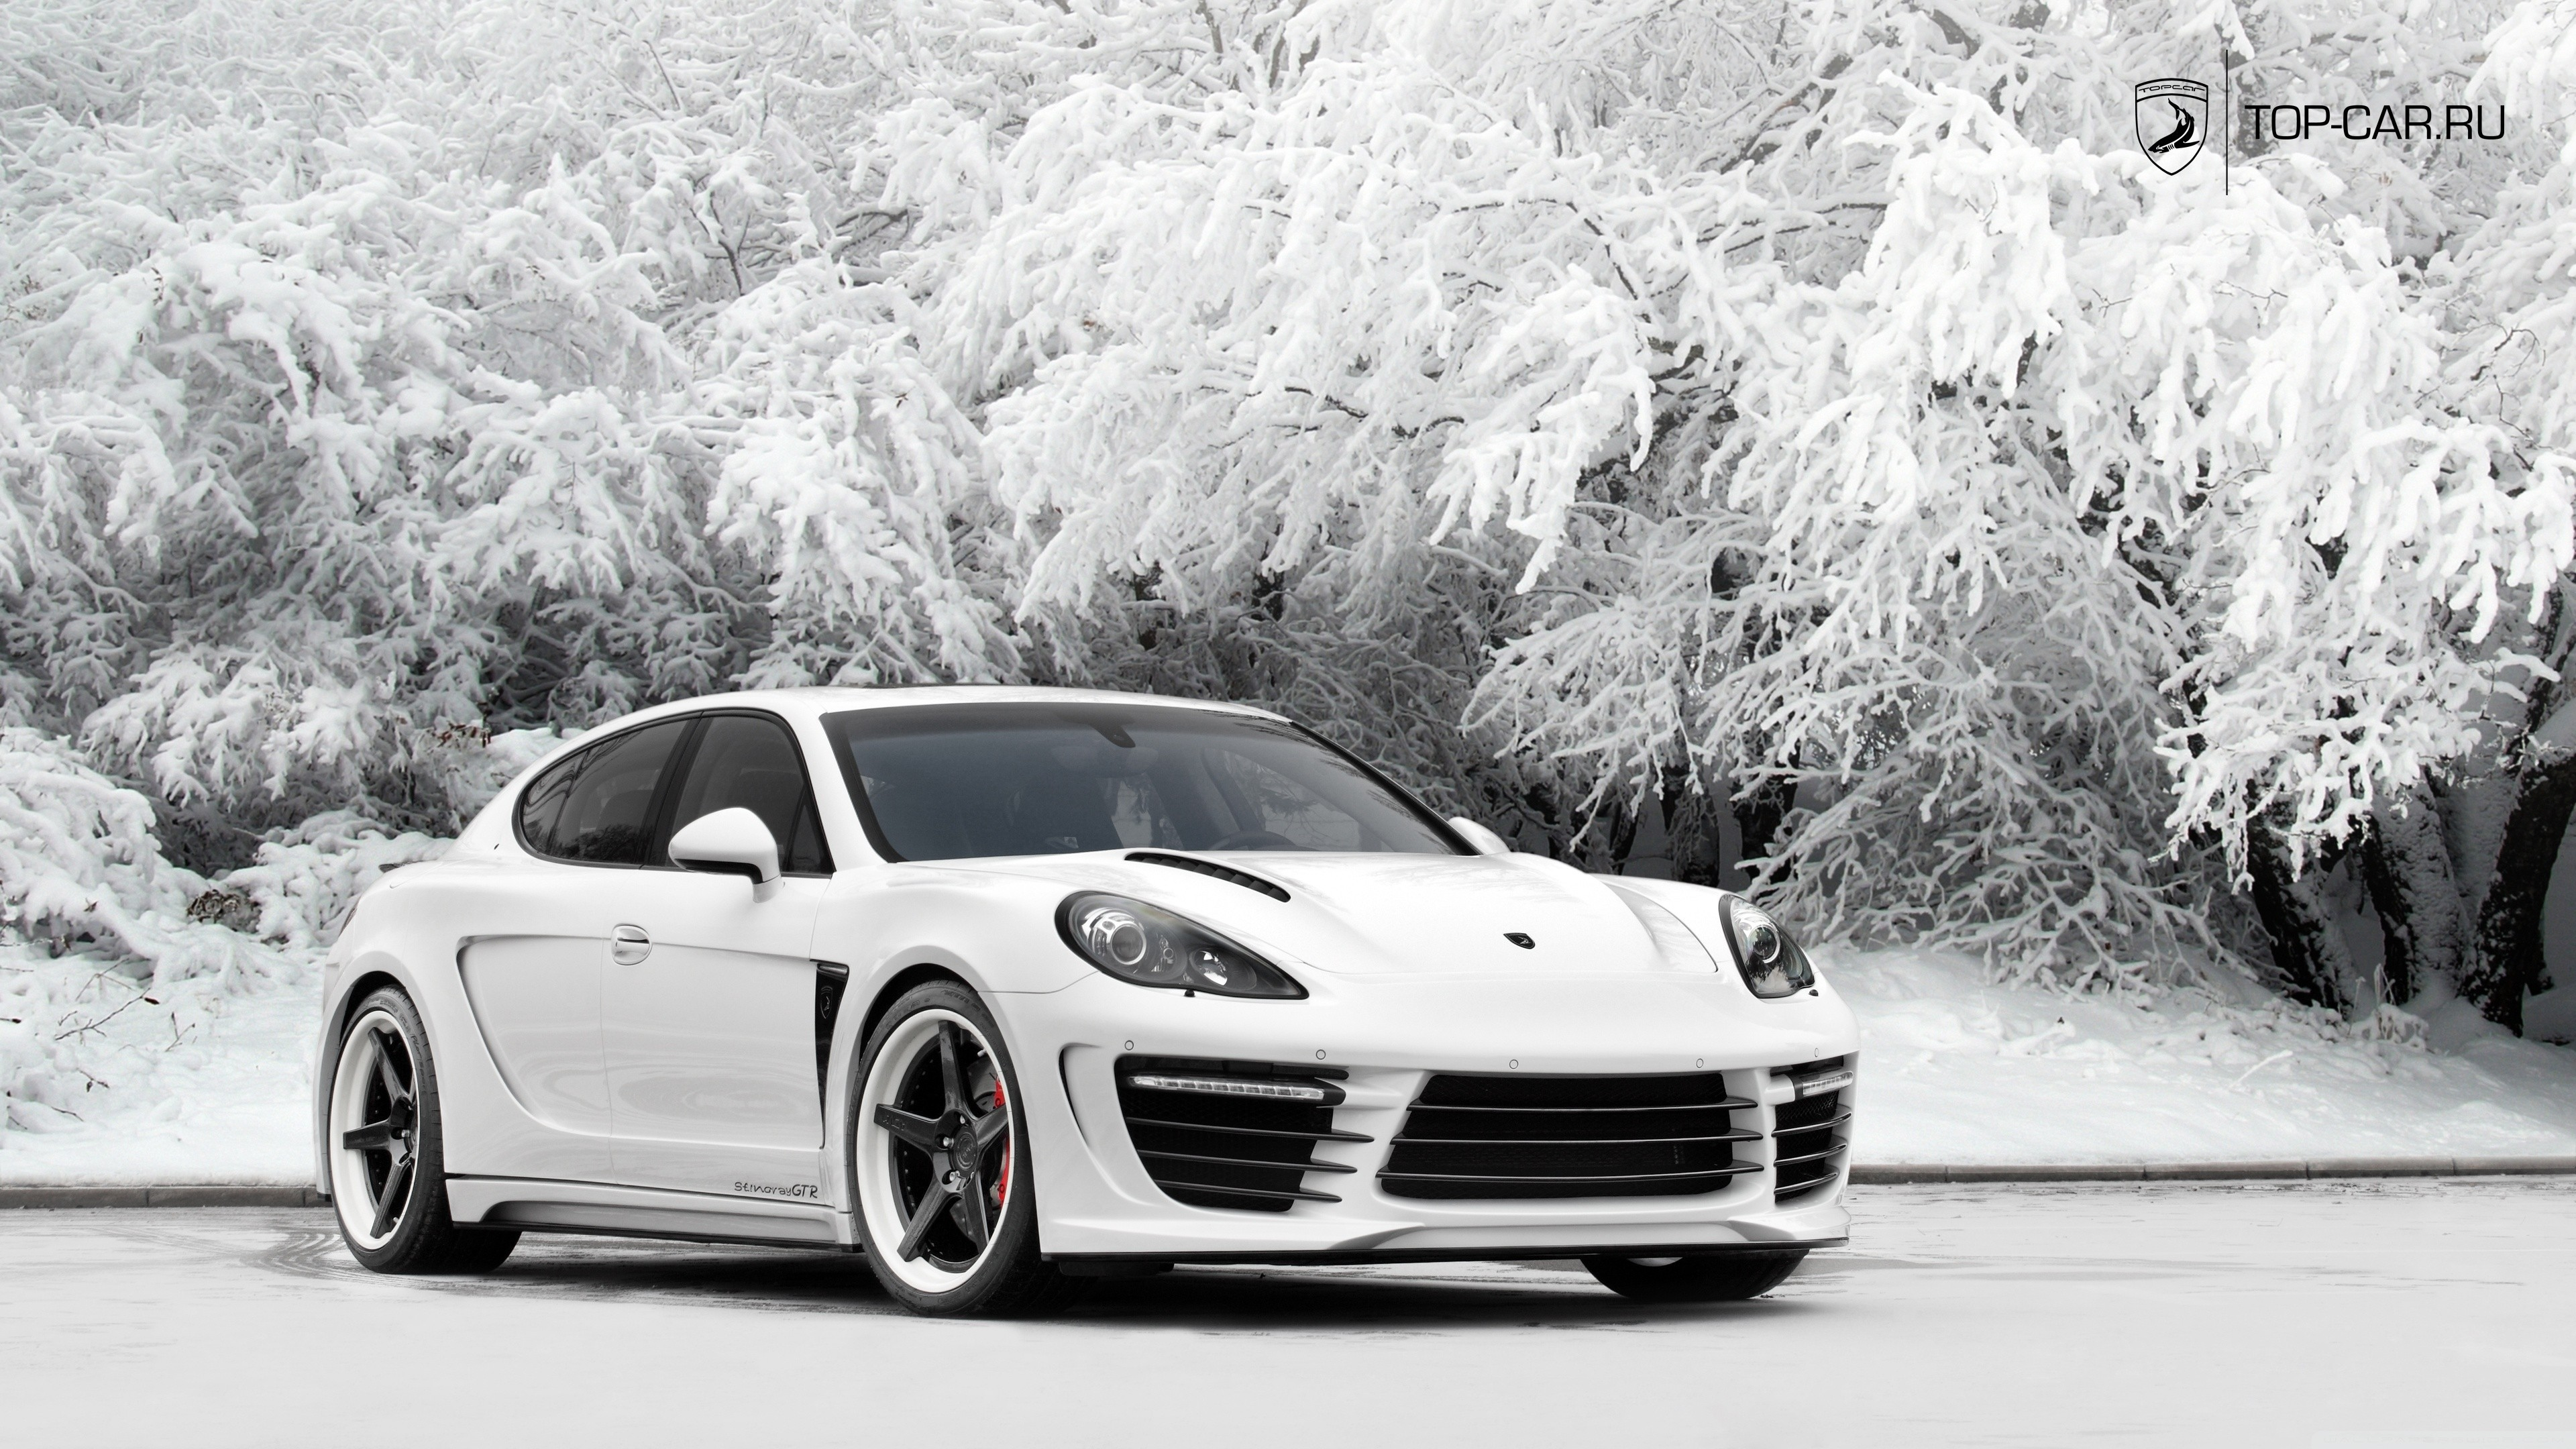 Porsche Panamera 2 Hd Cars 4k Wallpapers Images Backgrounds